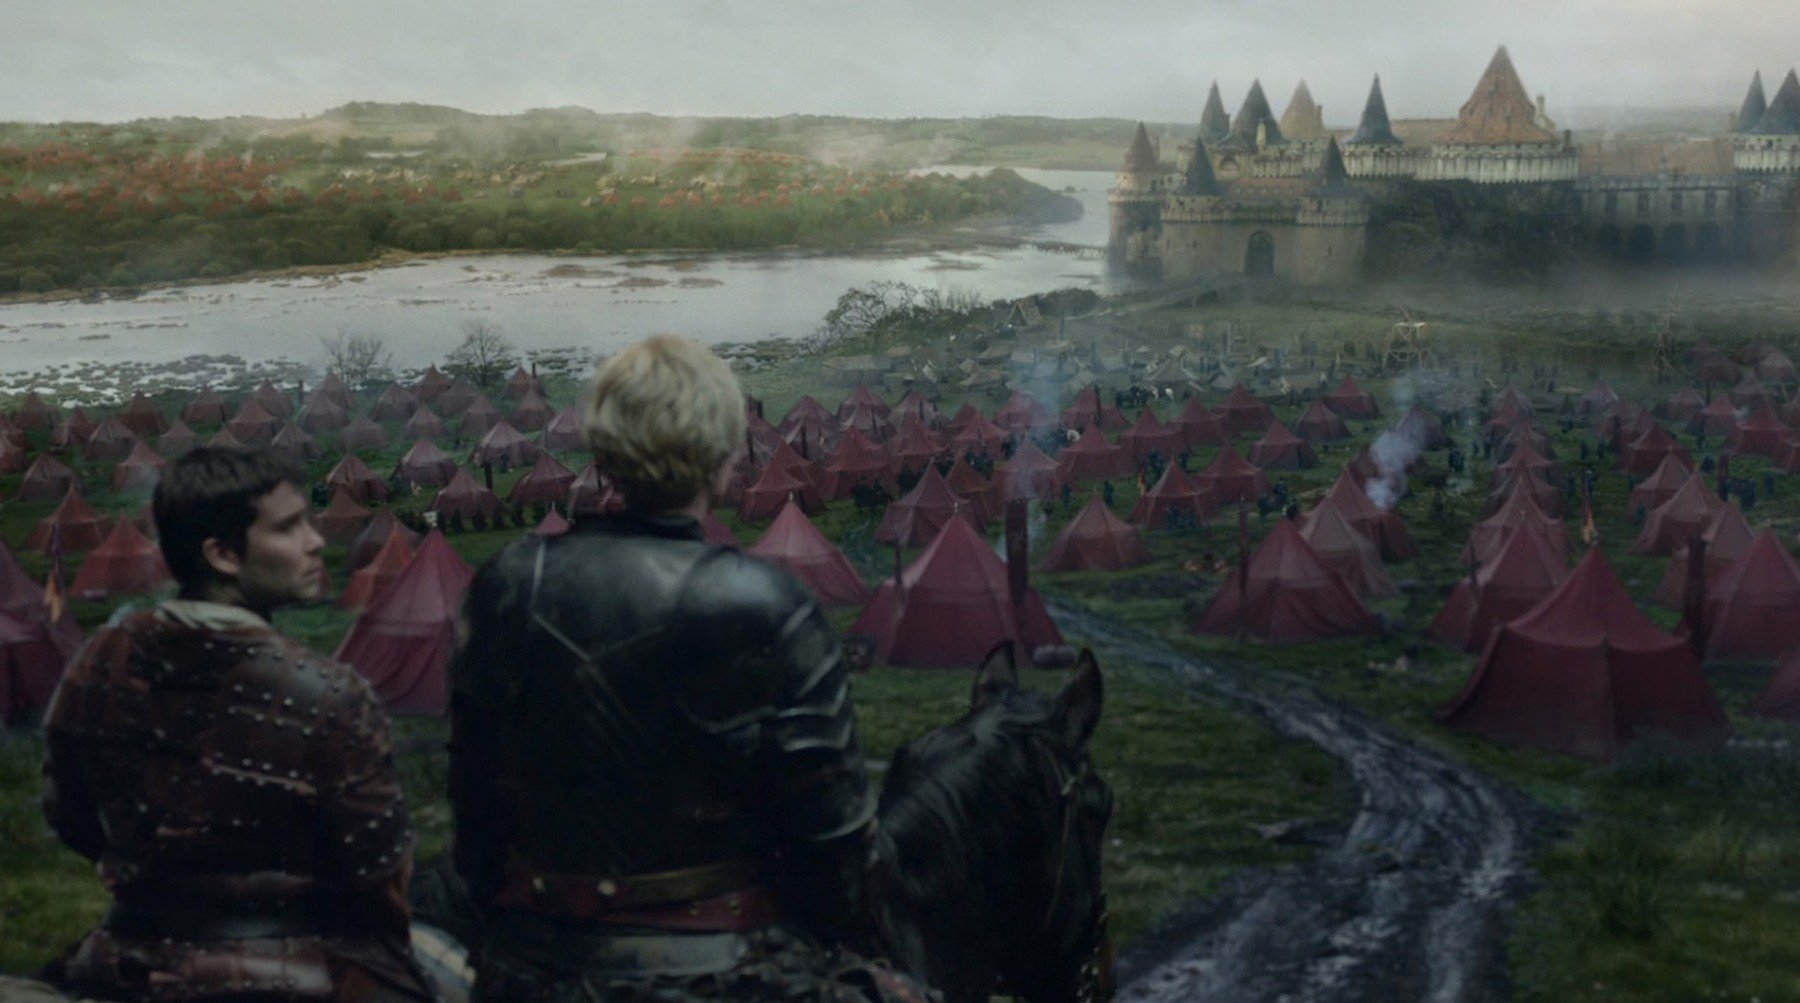 Los Angeles.CA.USA. Gwendoline Christie as Brienne of Tarth and Daniel Portman as Podrick Payne in a scene  at Riverrun in the ©HBO TV series,  Game of Thrones,  (TV) (2016) (S6E8)., Image: 291262907, License: Rights-managed, Restrictions: Supplied by Landmark Media. Editorial Only. Landmark Media is not the copyright owner of these Film or TV stills but provides a service only for recognised Media outlets., Model Release: no, Credit line: Profimedia, Landmark